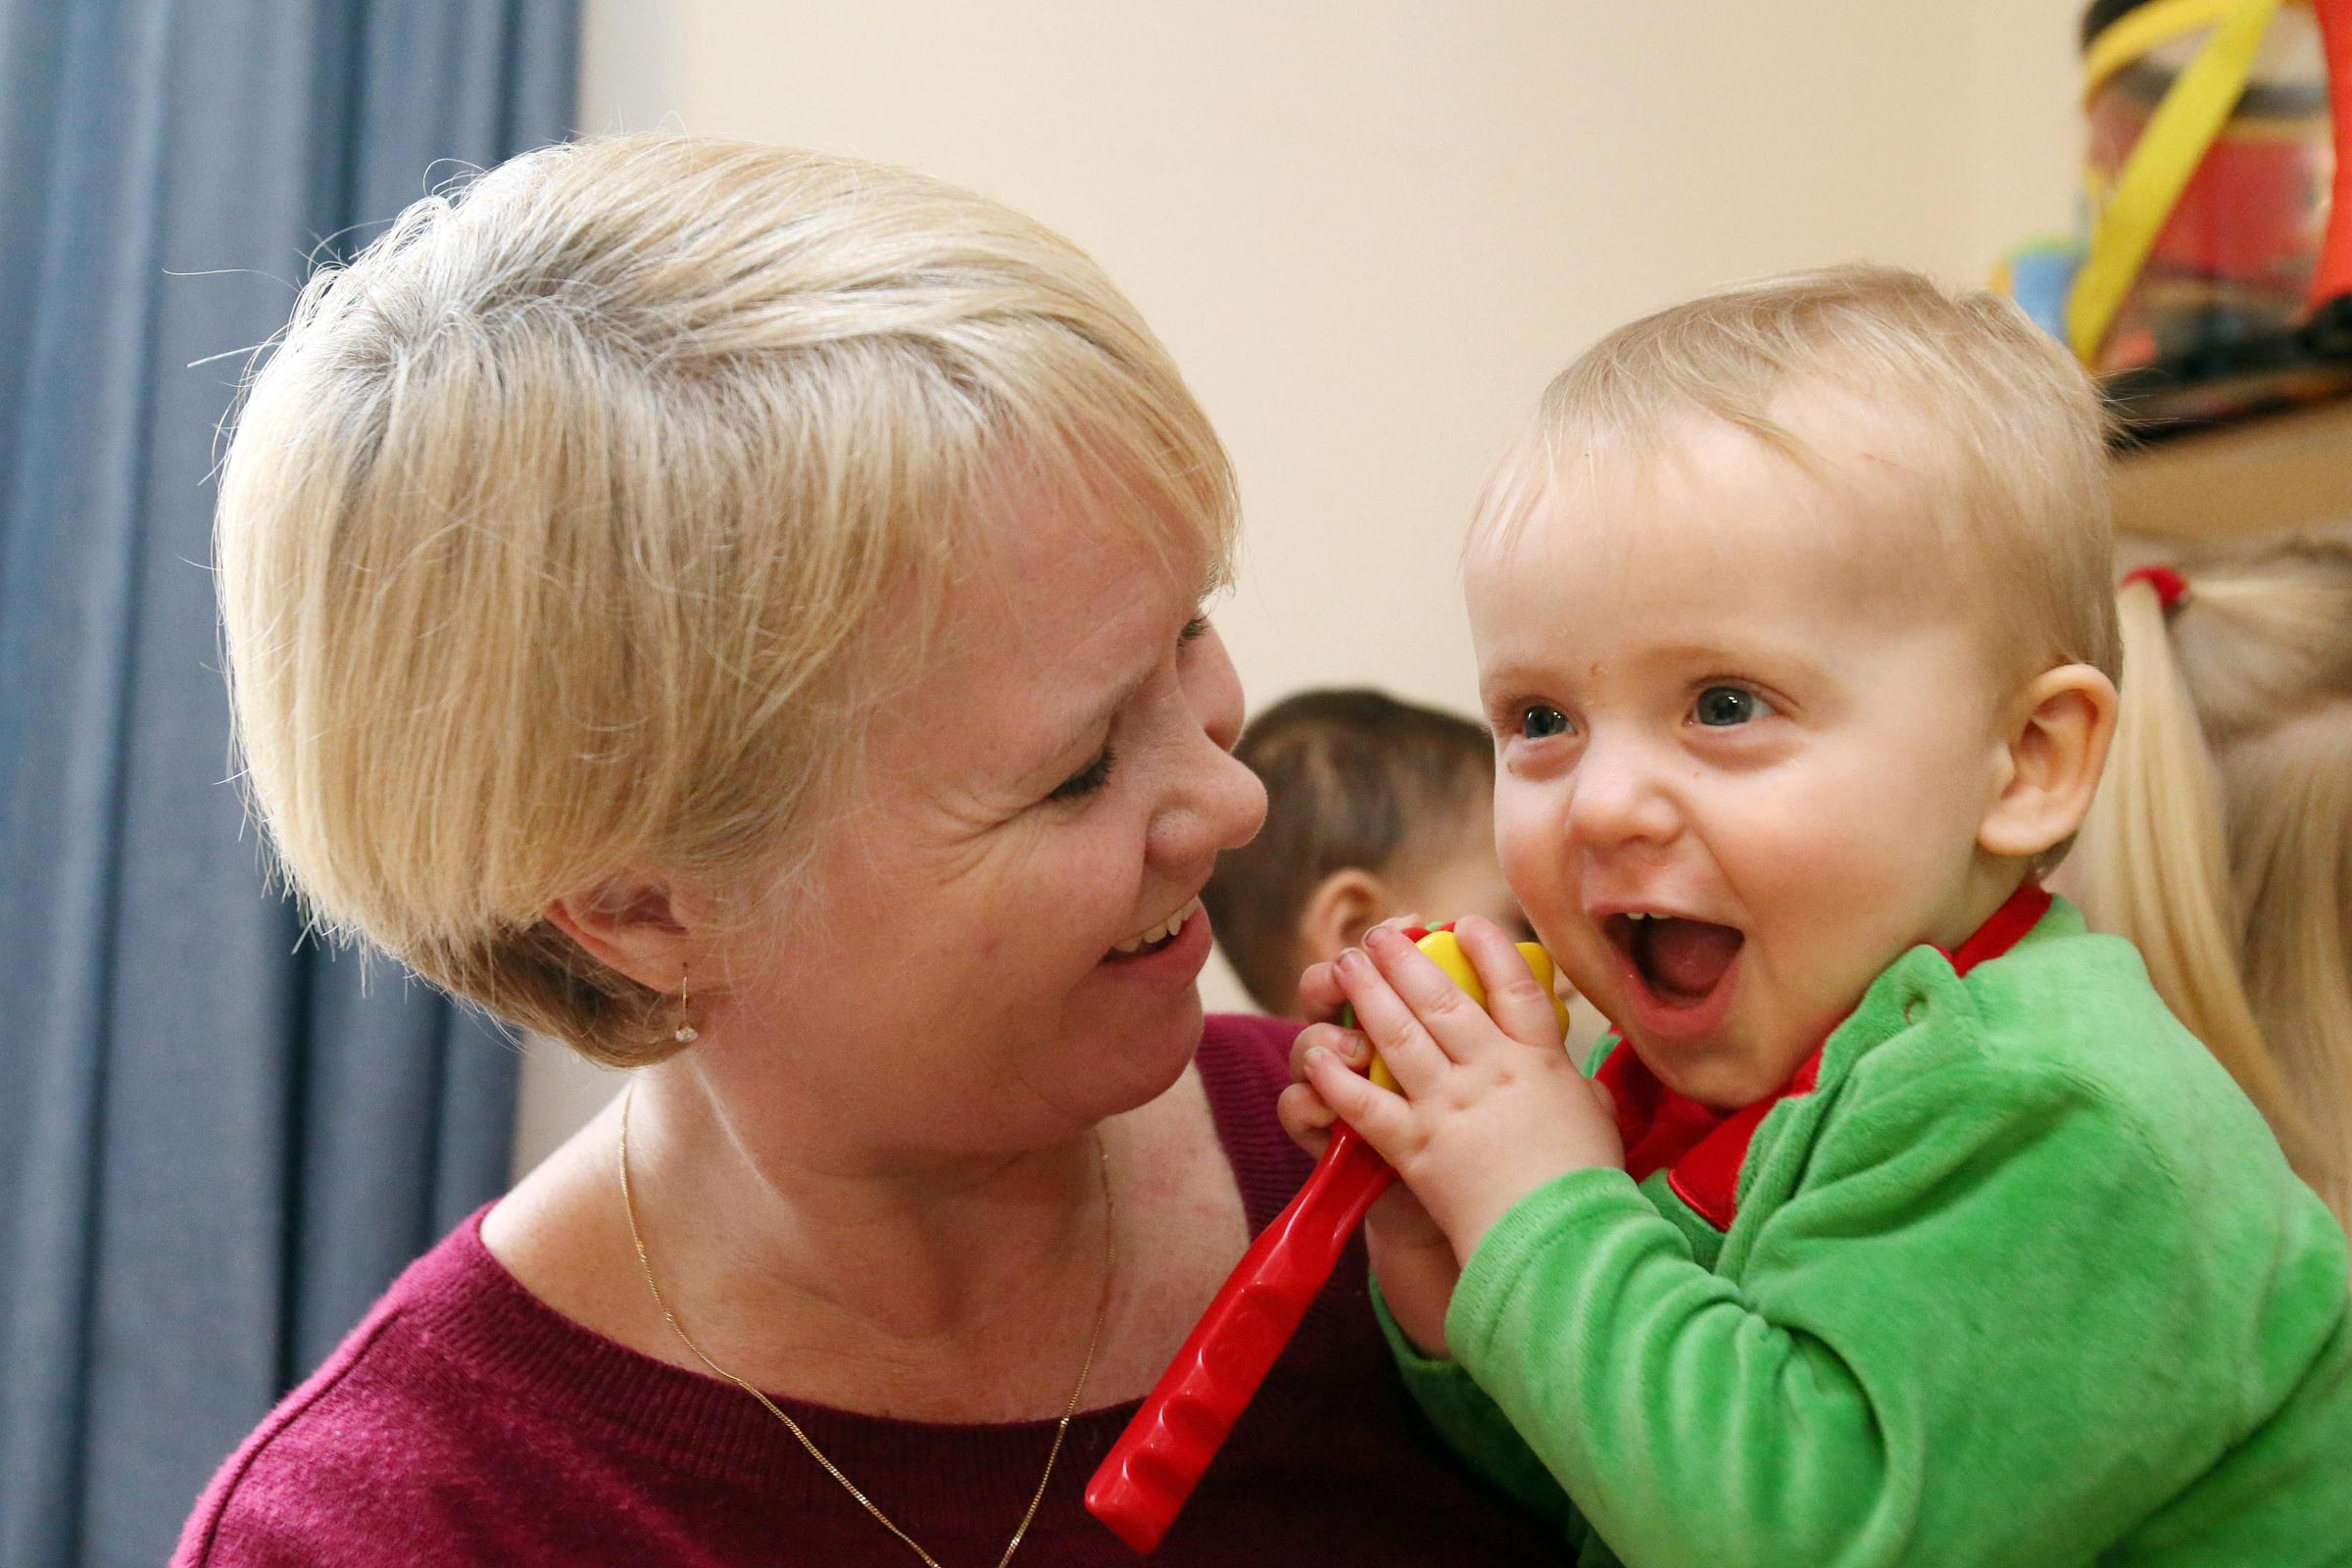 'Baby Matters' scheme launched